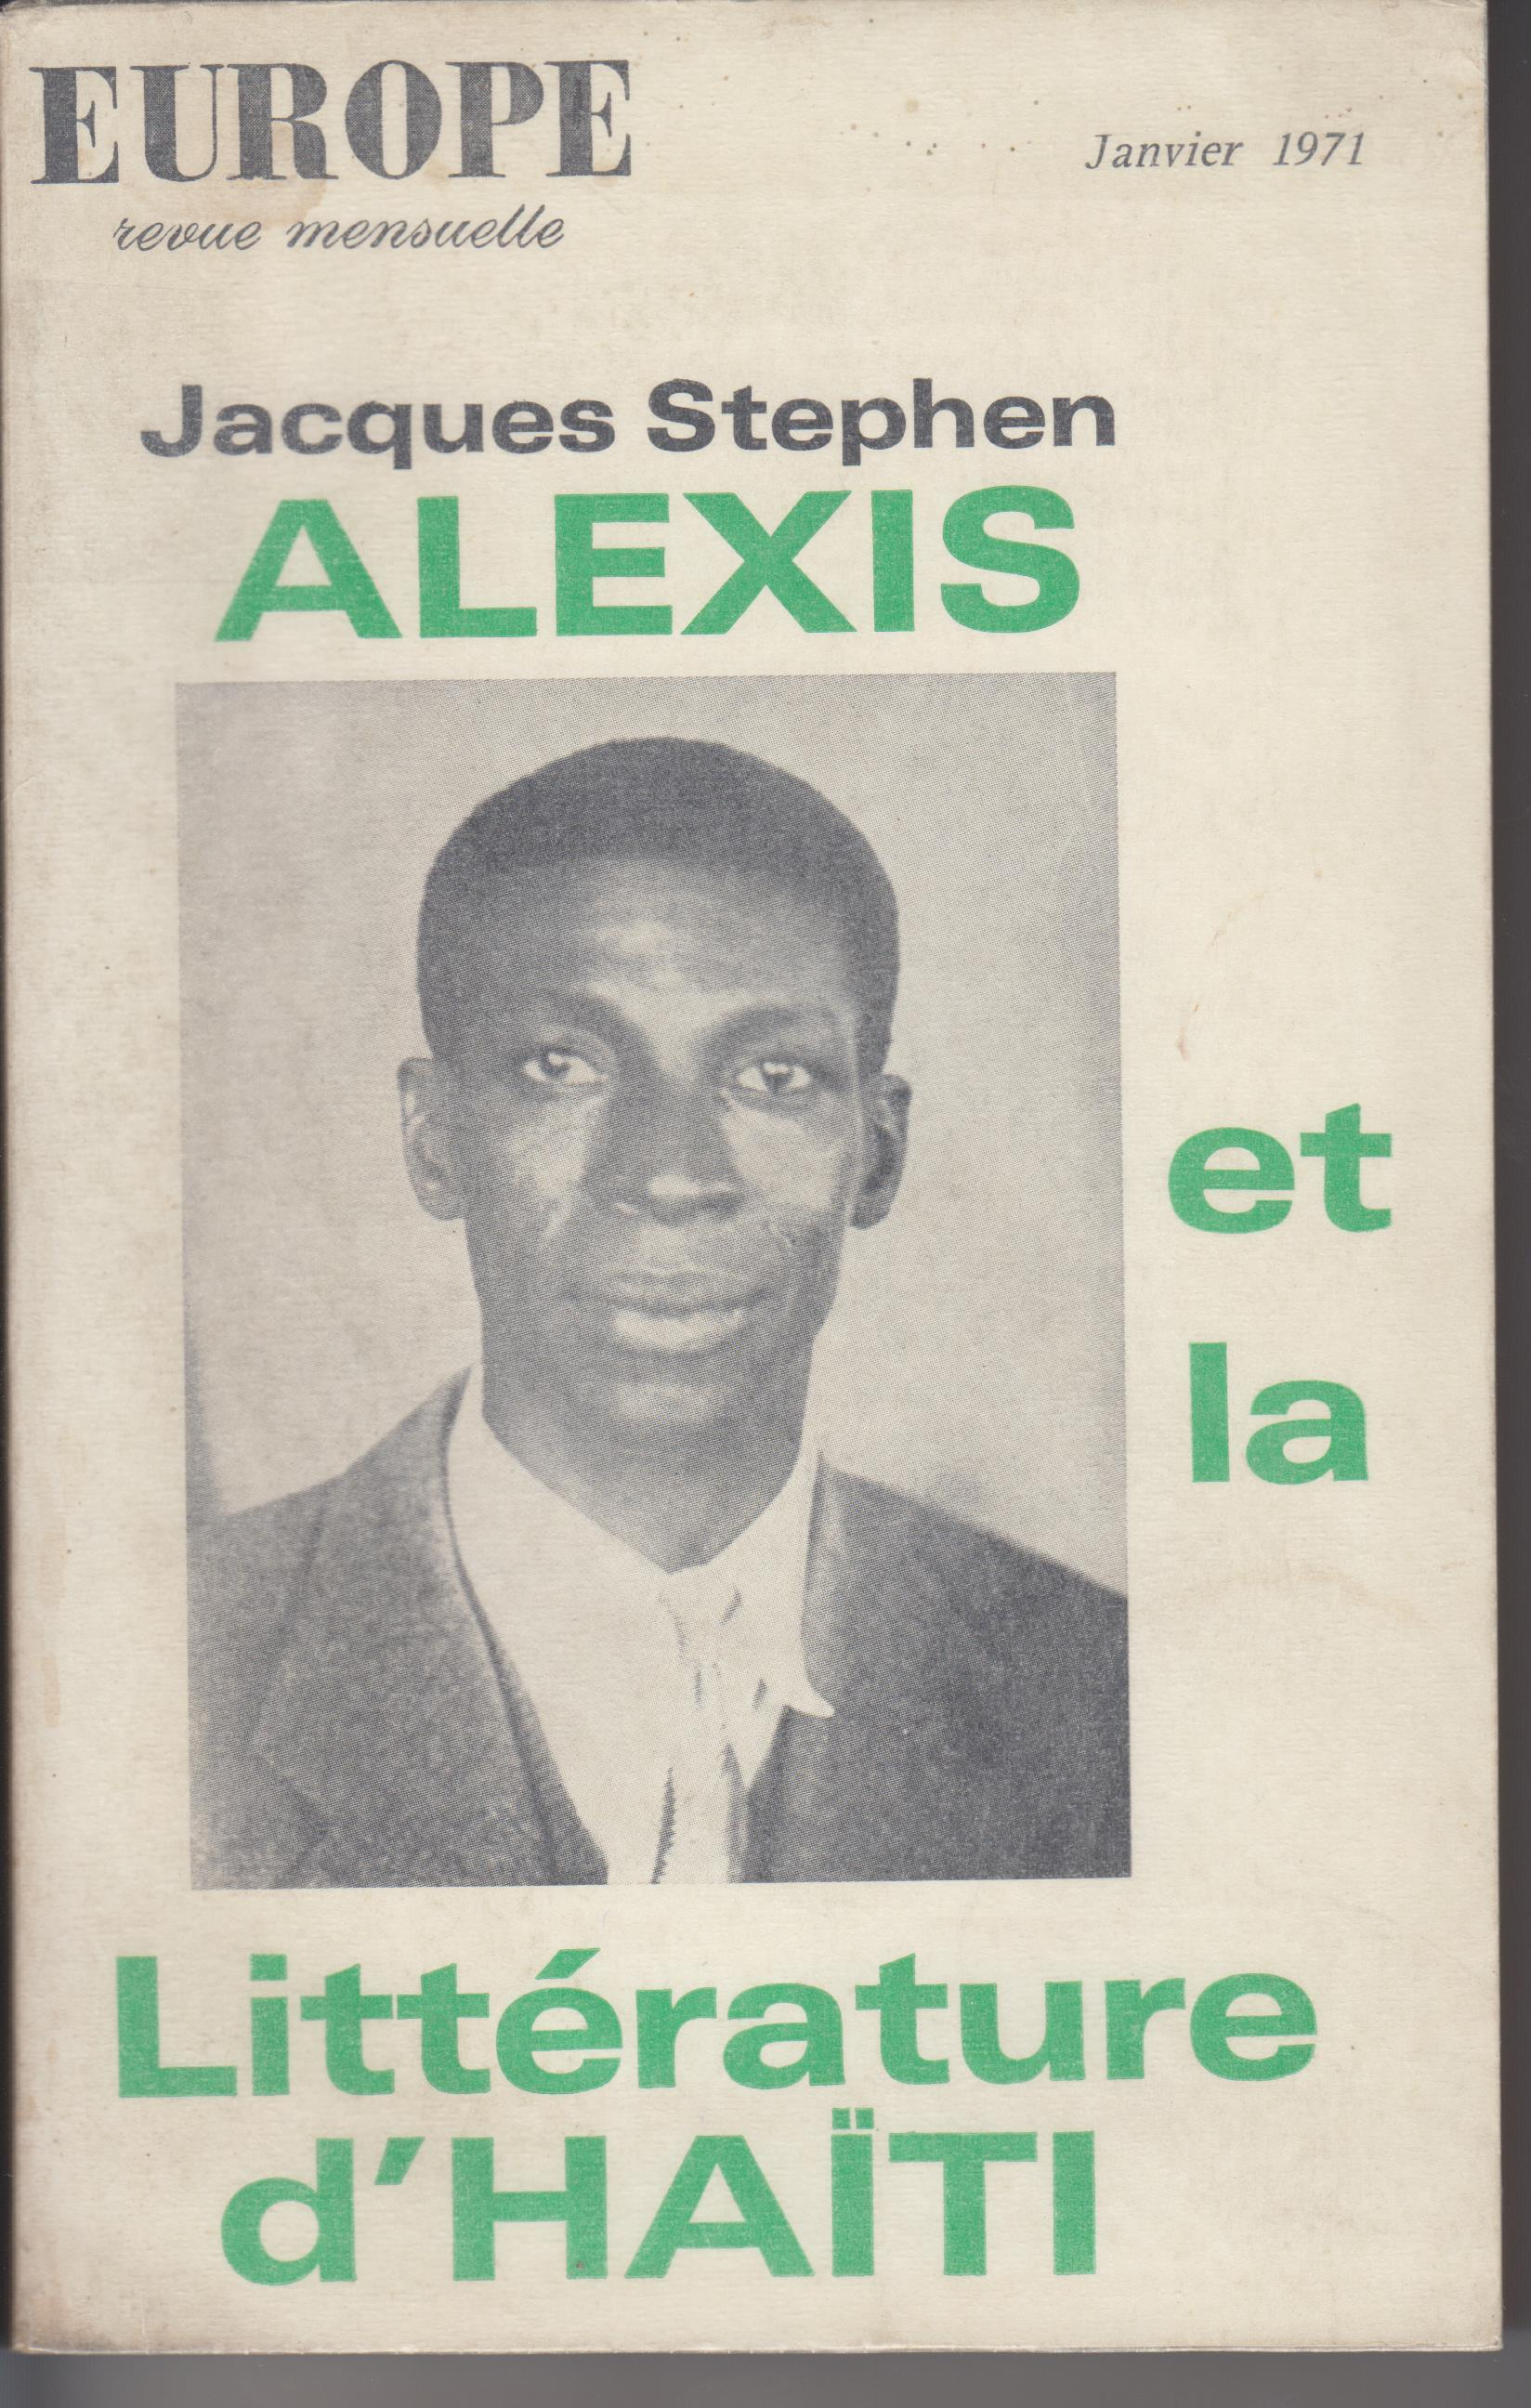 Image for Jacques Stephen Alexis Et La Litterature D'Haiti (Europe No. 501, January 1971)